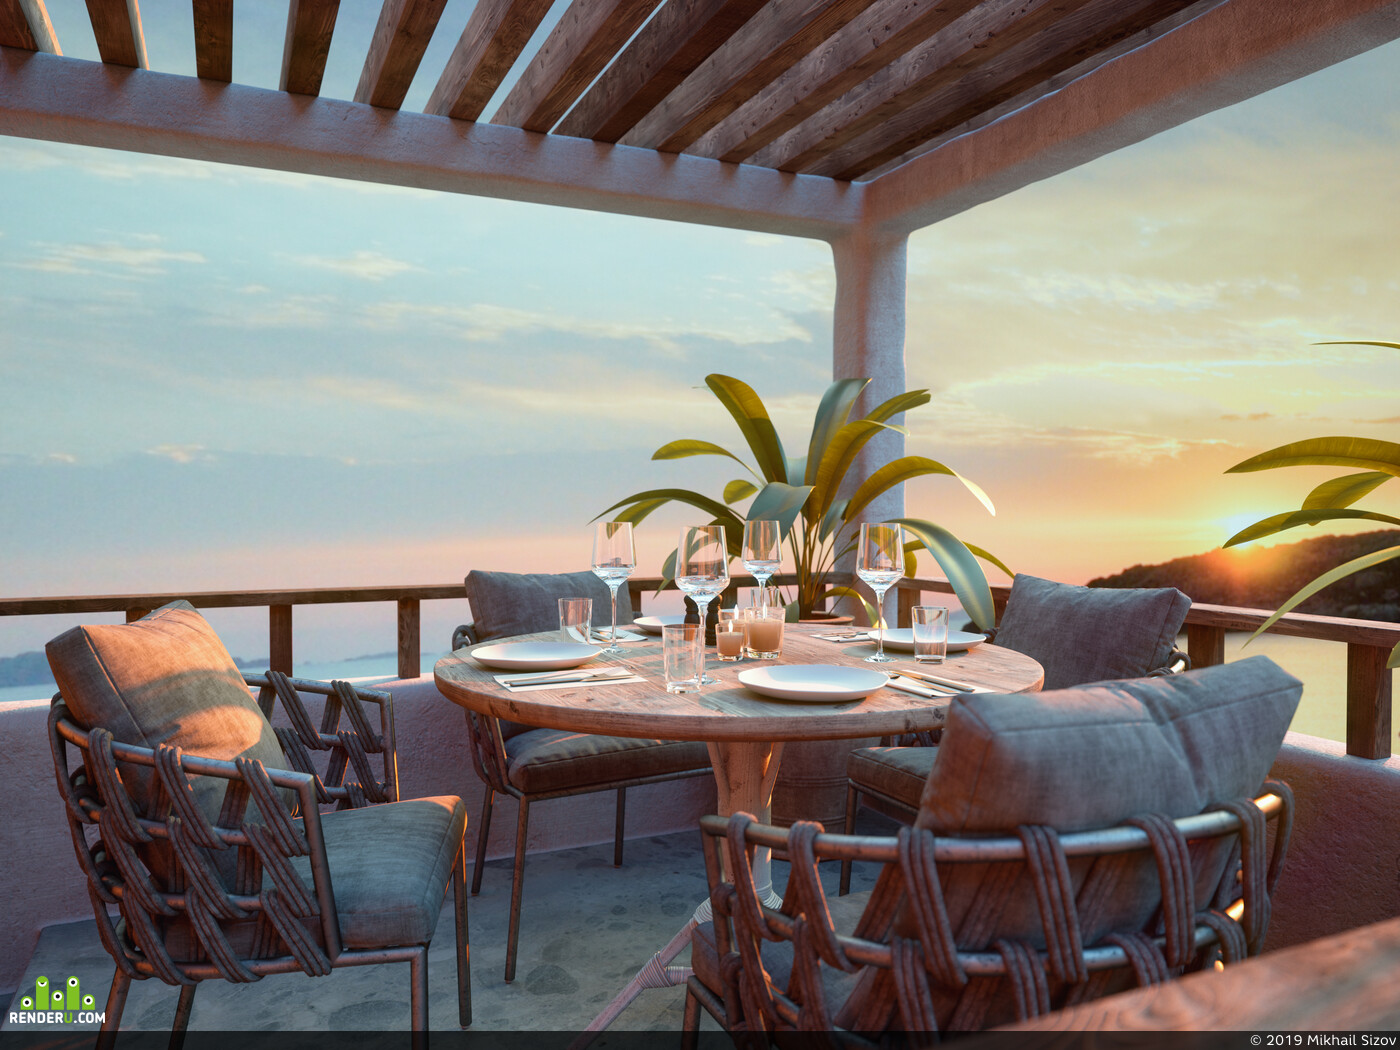 cafe, rattan chair, terrace, rattan lamp, extexterior, armchair, design, wood table, Architectural3Dvisualizer, interior